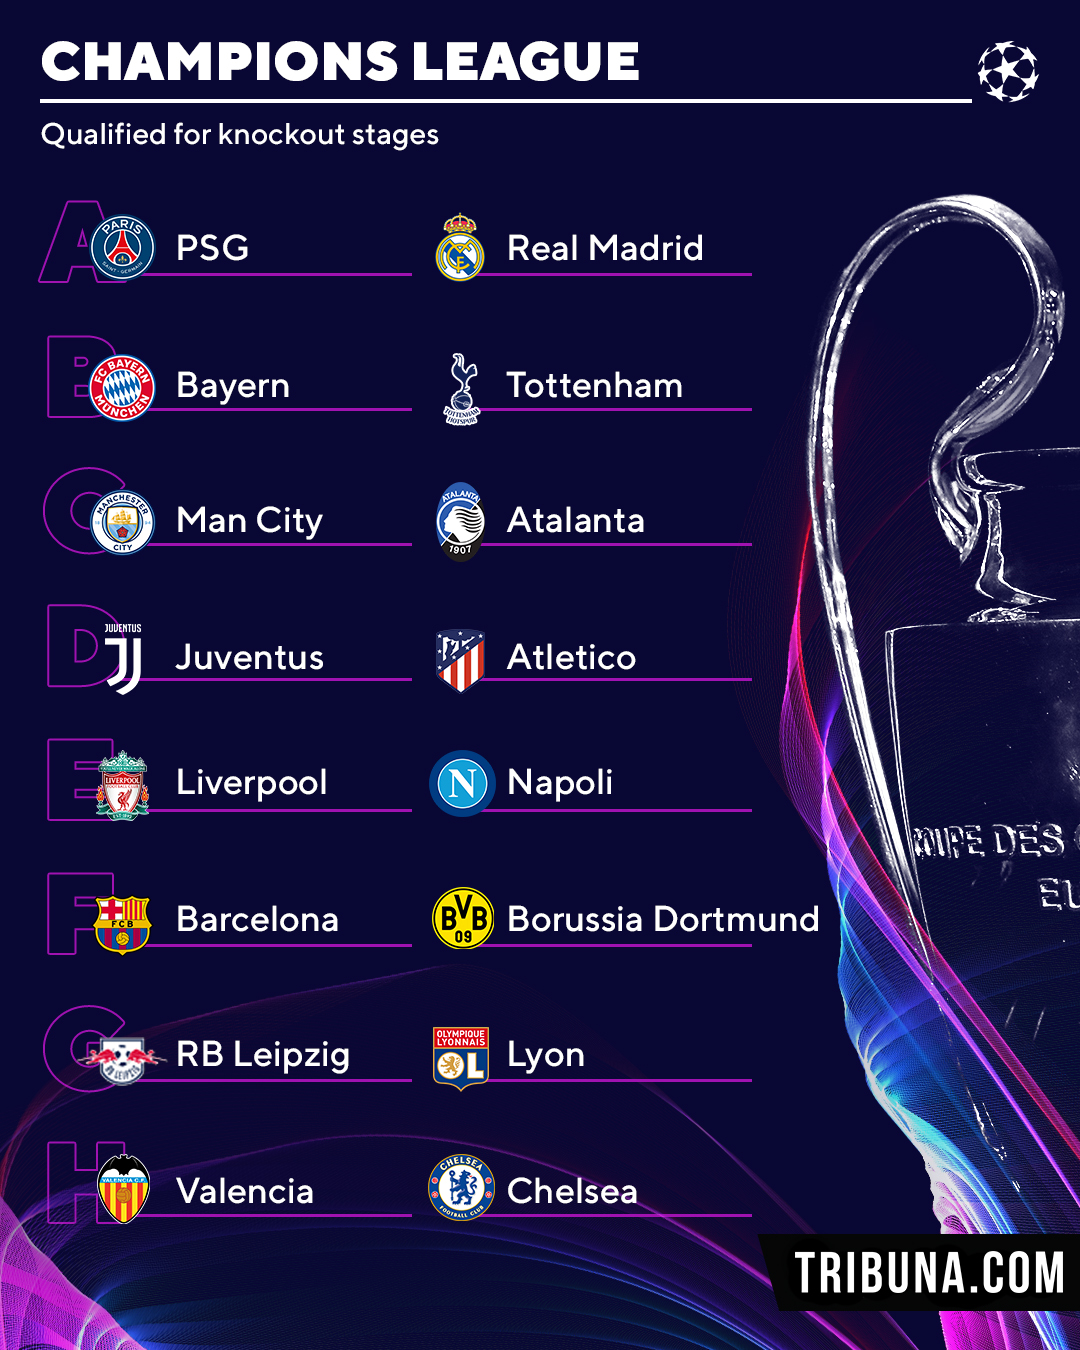 achtelfinale champions league 2019